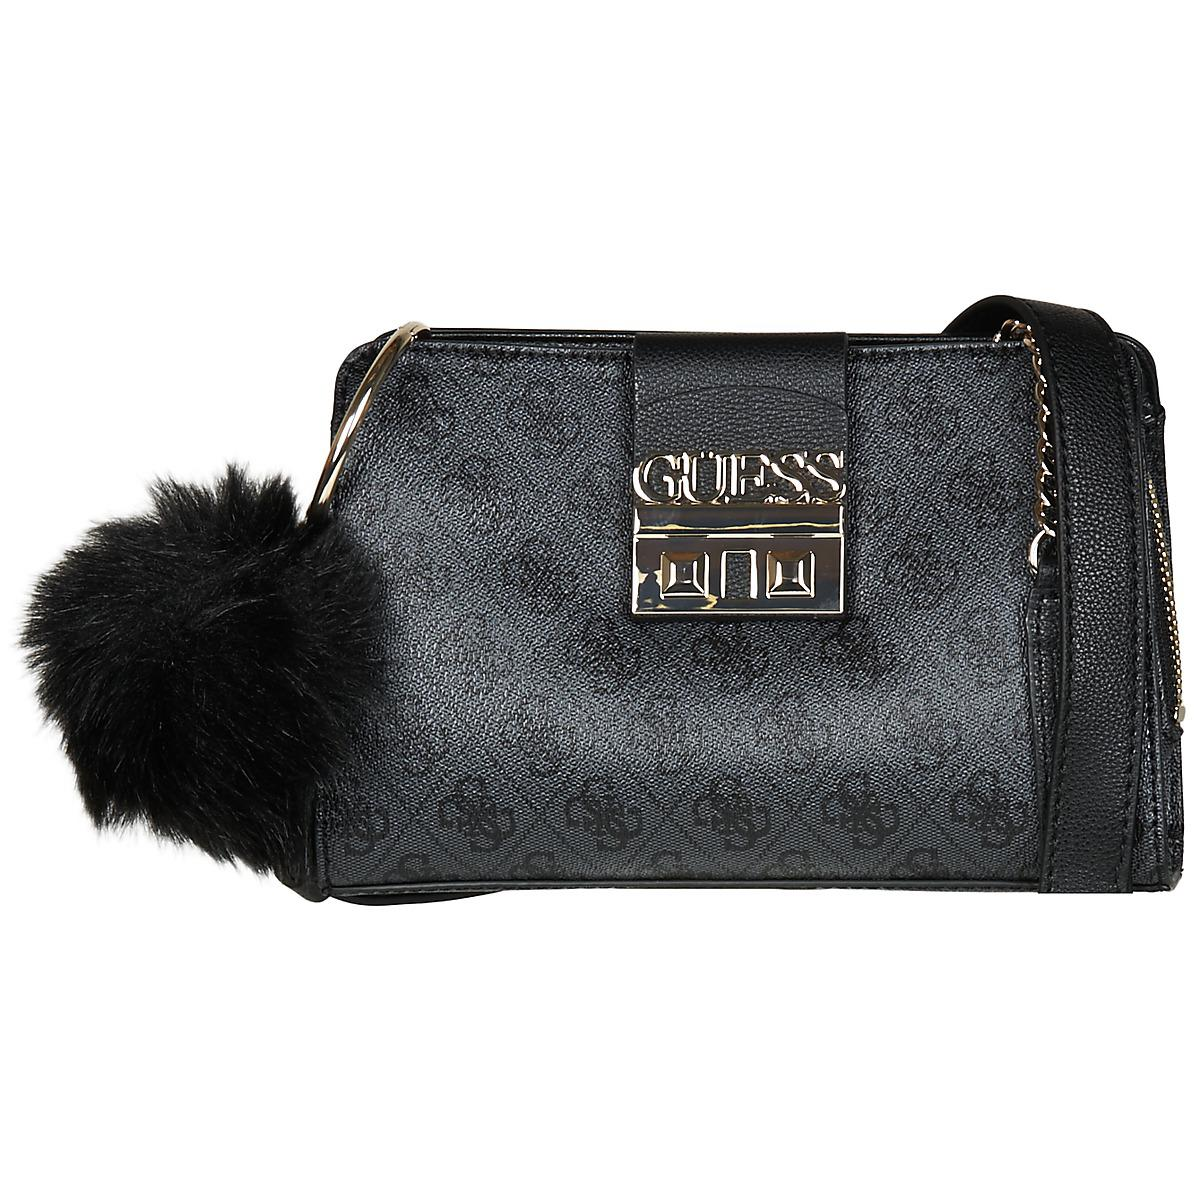 7690a63d23cb77 Guess Logo Luxe Crossbody Girlfriend Women's Shoulder Bag In Black ...